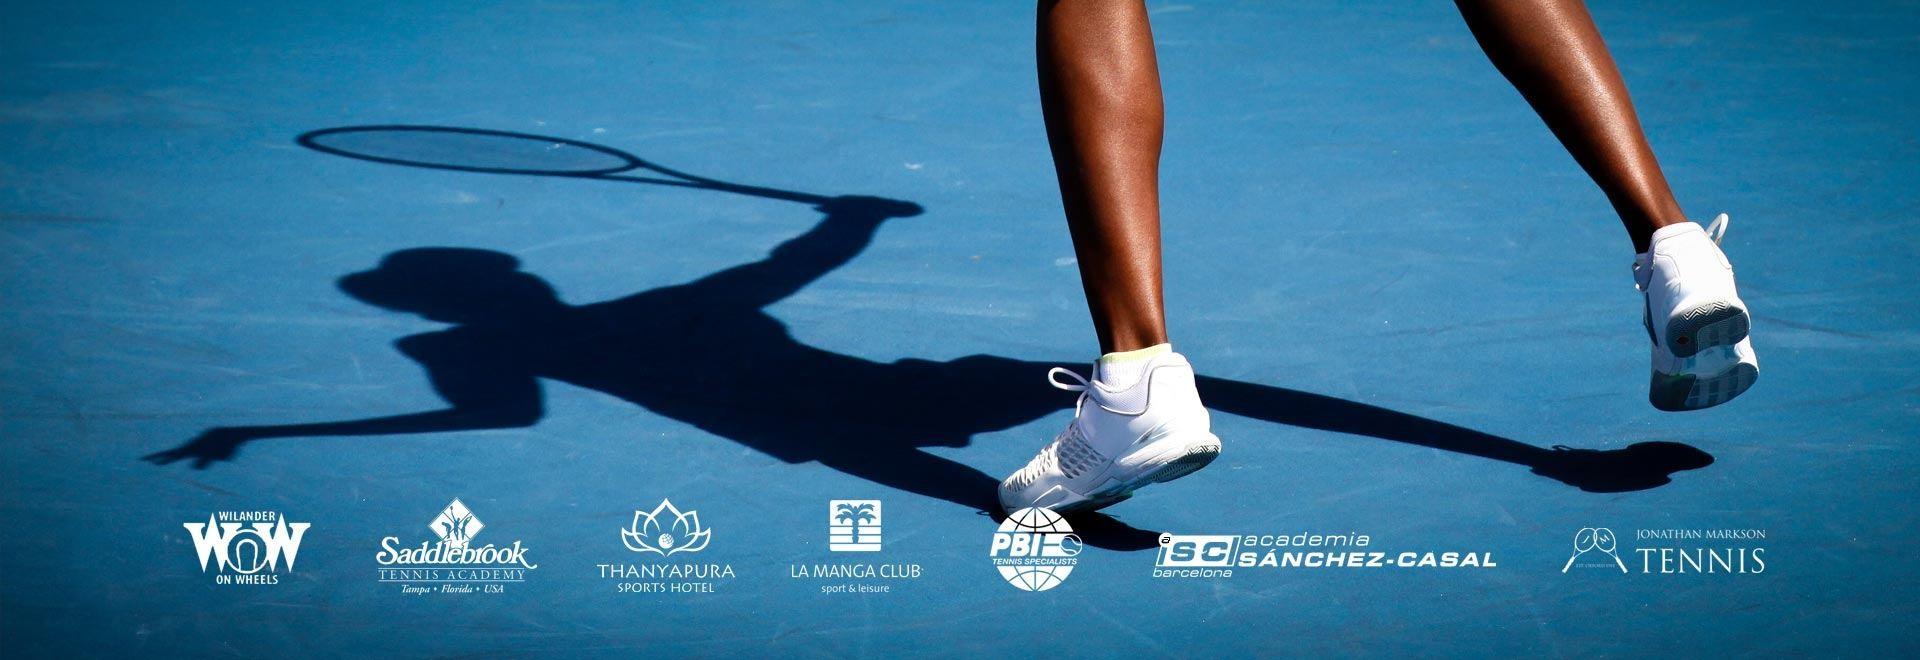 Join the World Tennis Travel family - List your tennis resort, academy, camp or event